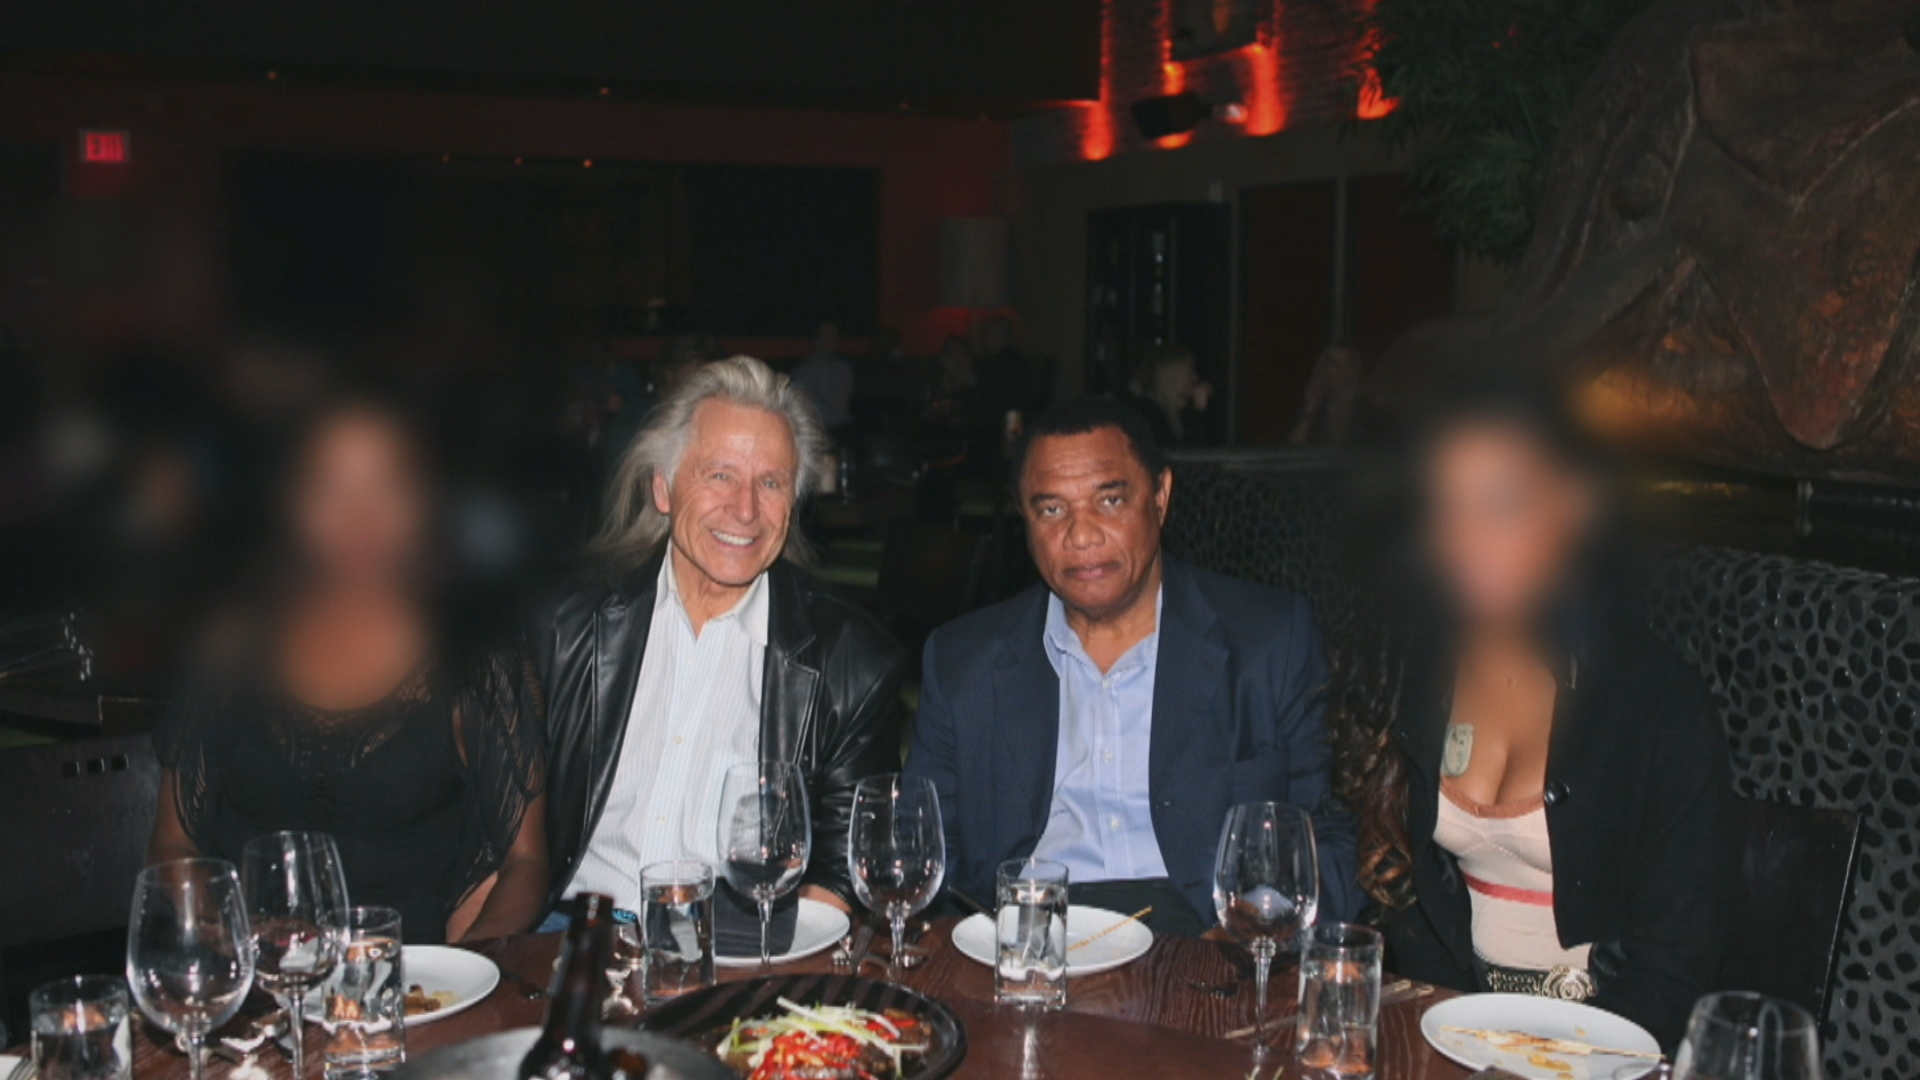 Nygard and former Bahamian prime minister Perry Christie in a Las Vegas restaurant with two young women. (Submitted by Stephen Feralio)